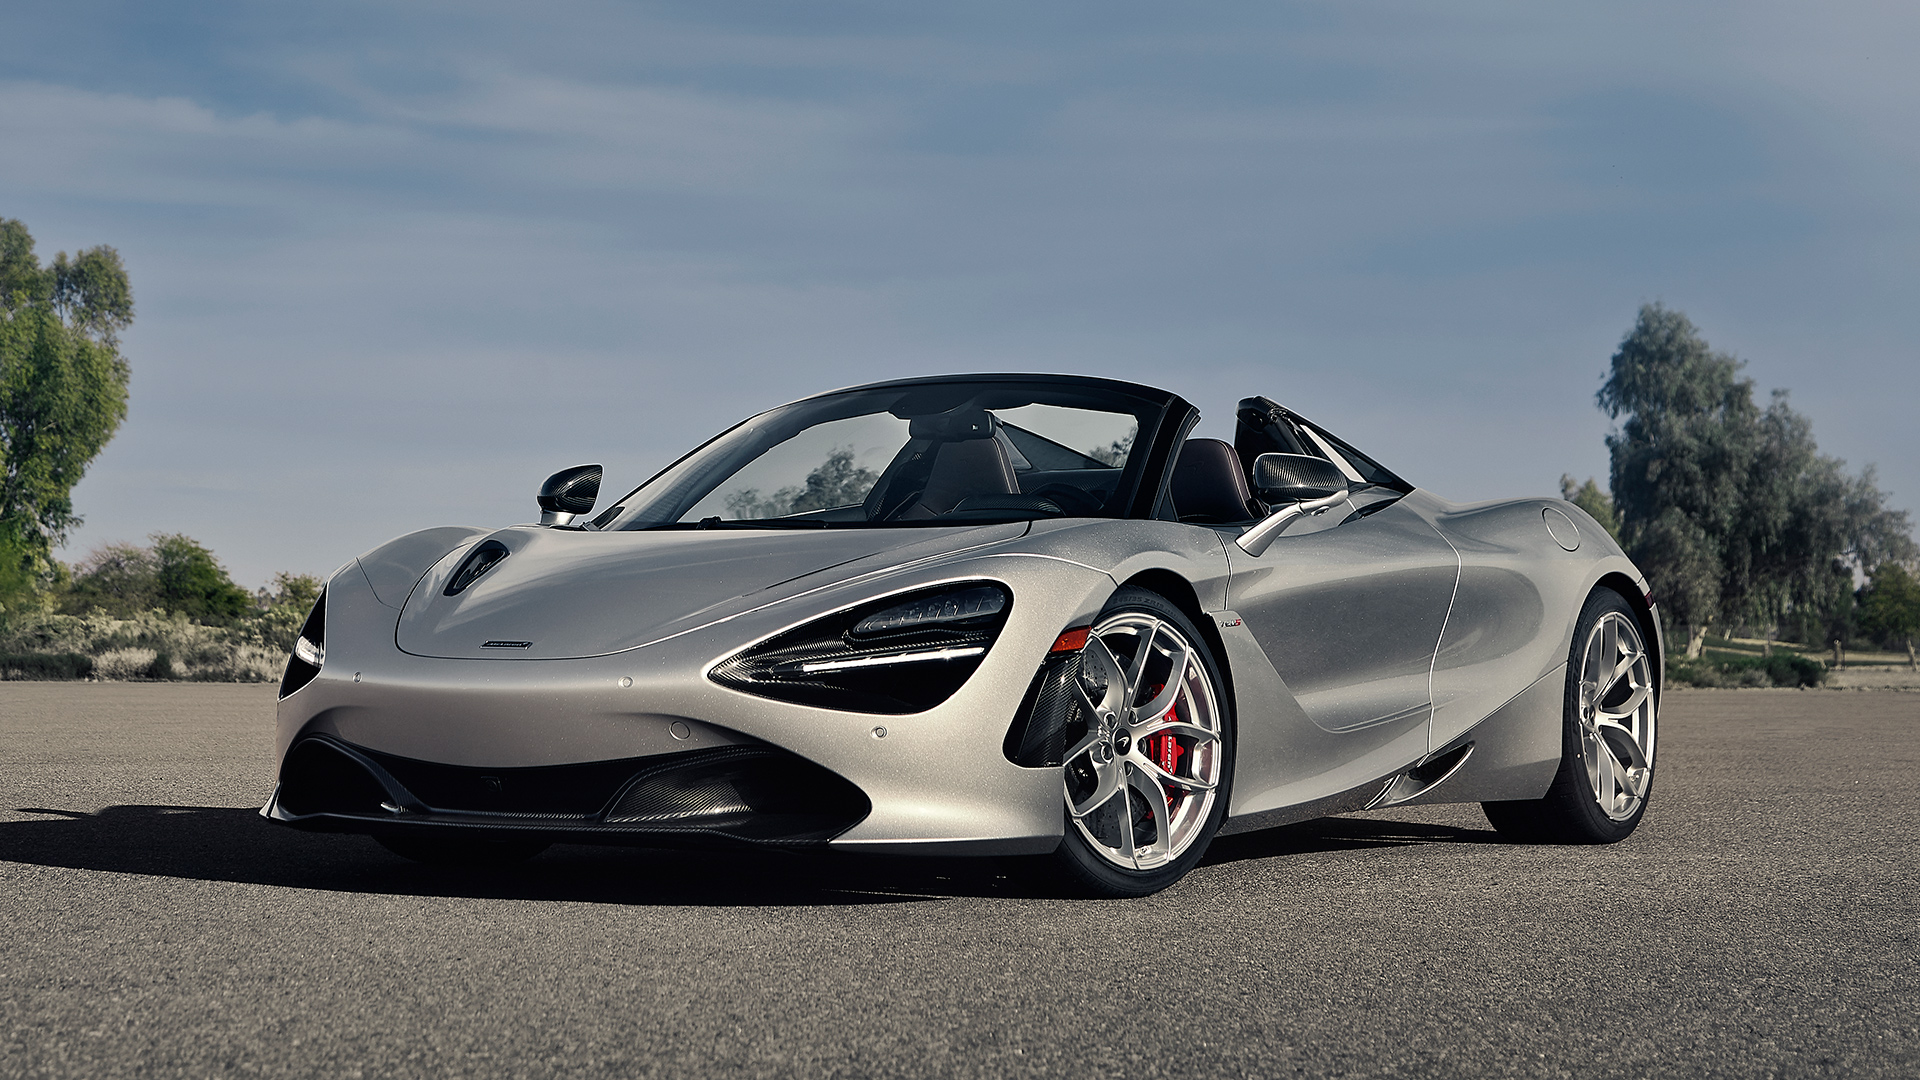 2019 Mclaren 720s Spider First Drive Review A Supercar